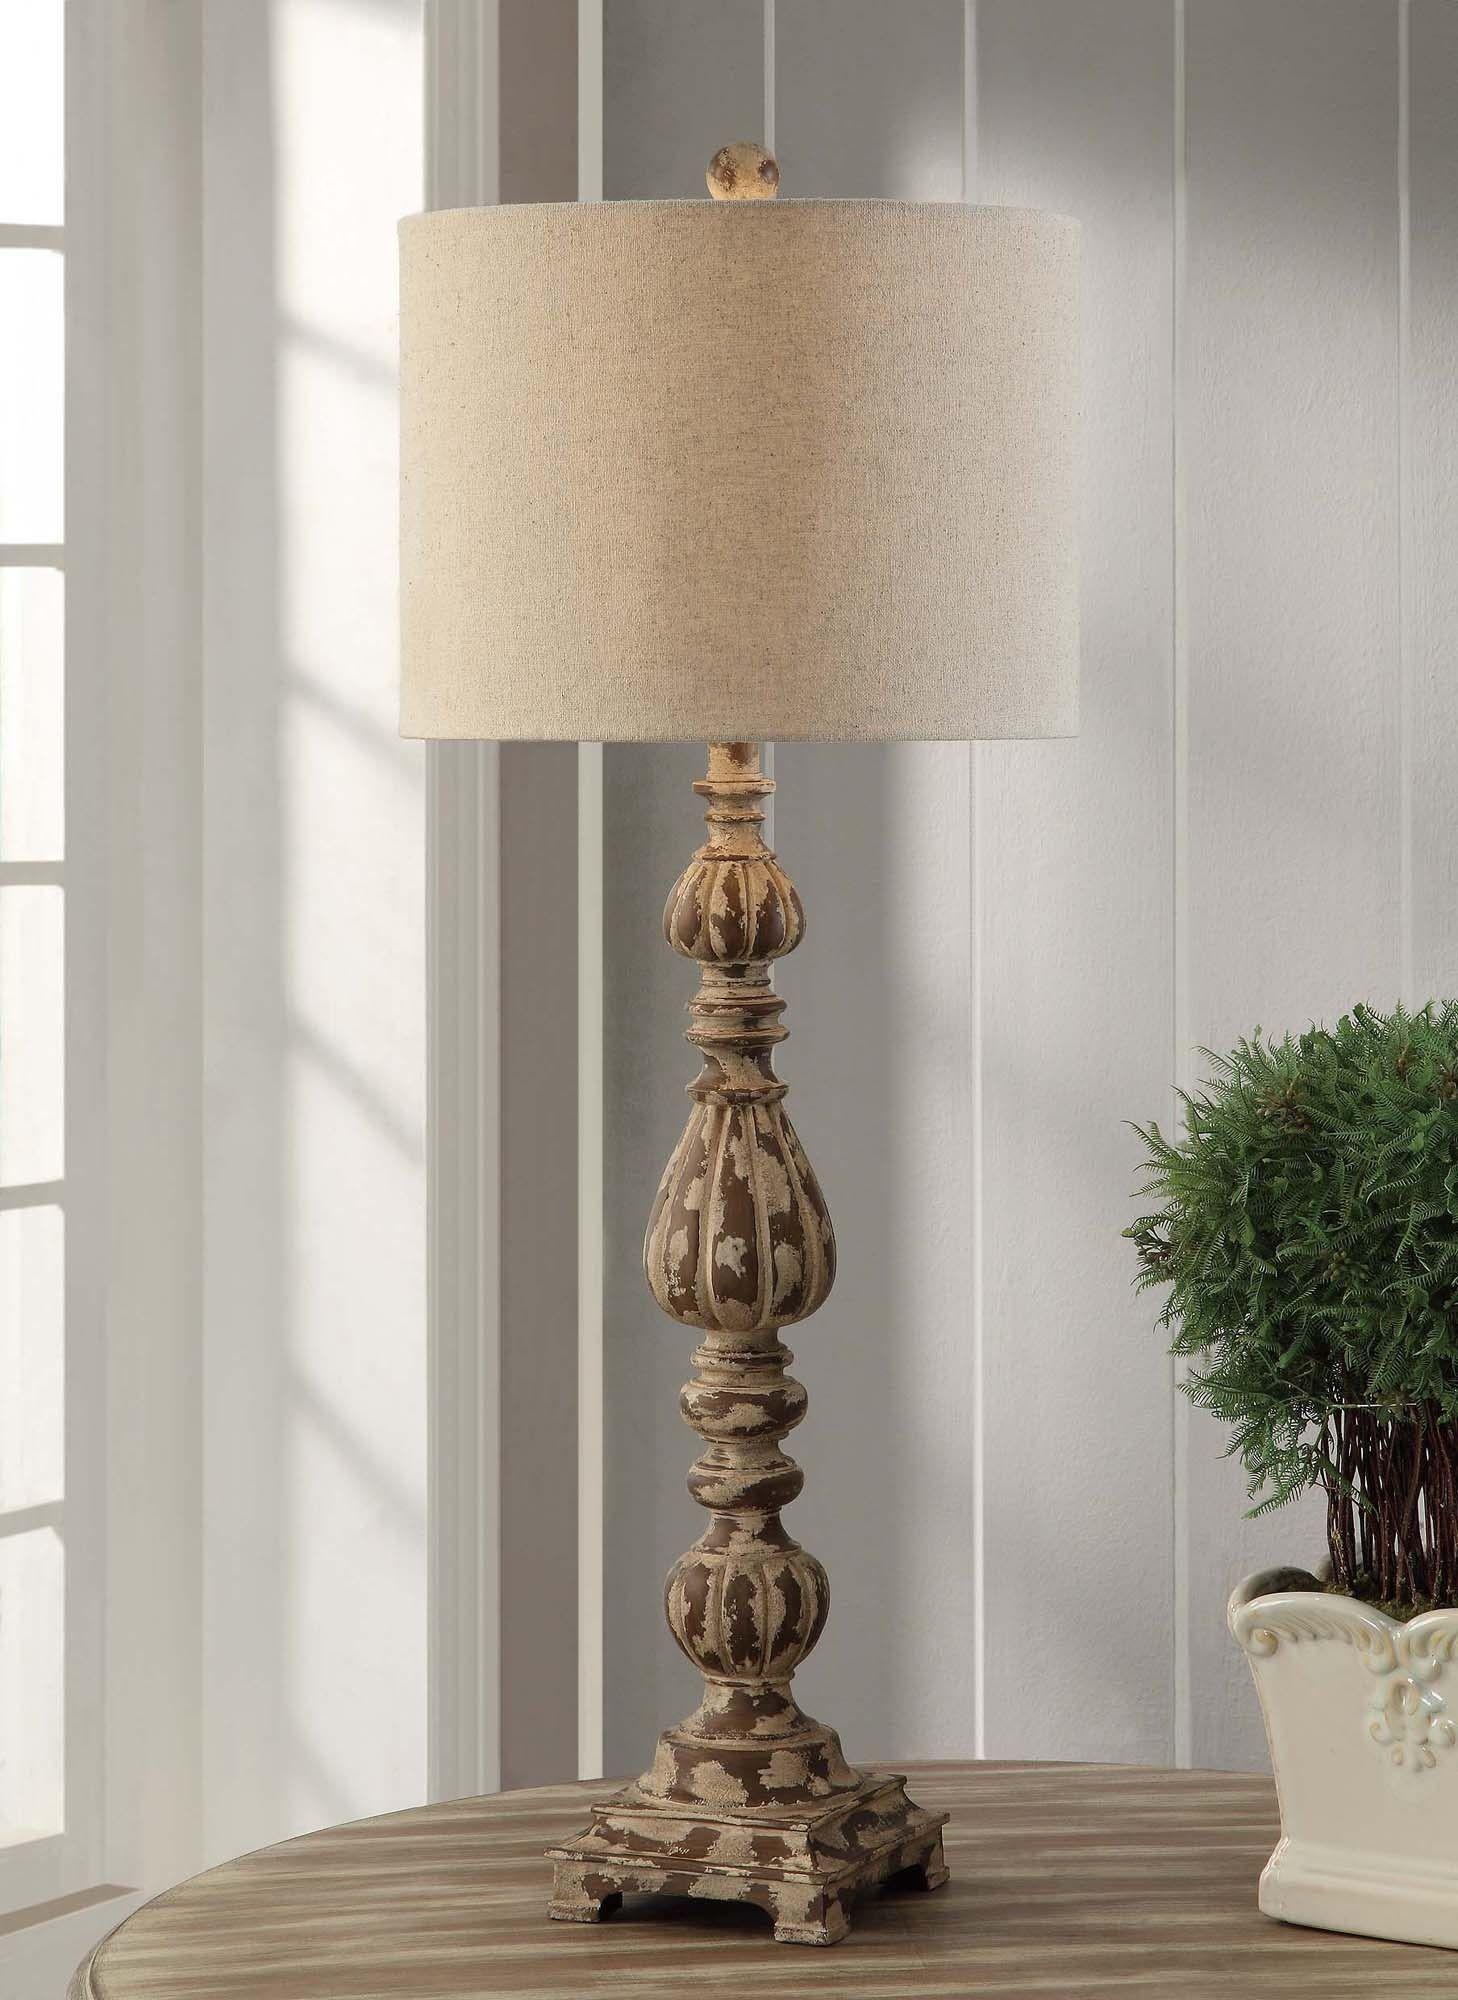 Slender avian lamp by crestview collection home gallery stores slender avian lamp by crestview collection home gallery stores geotapseo Gallery